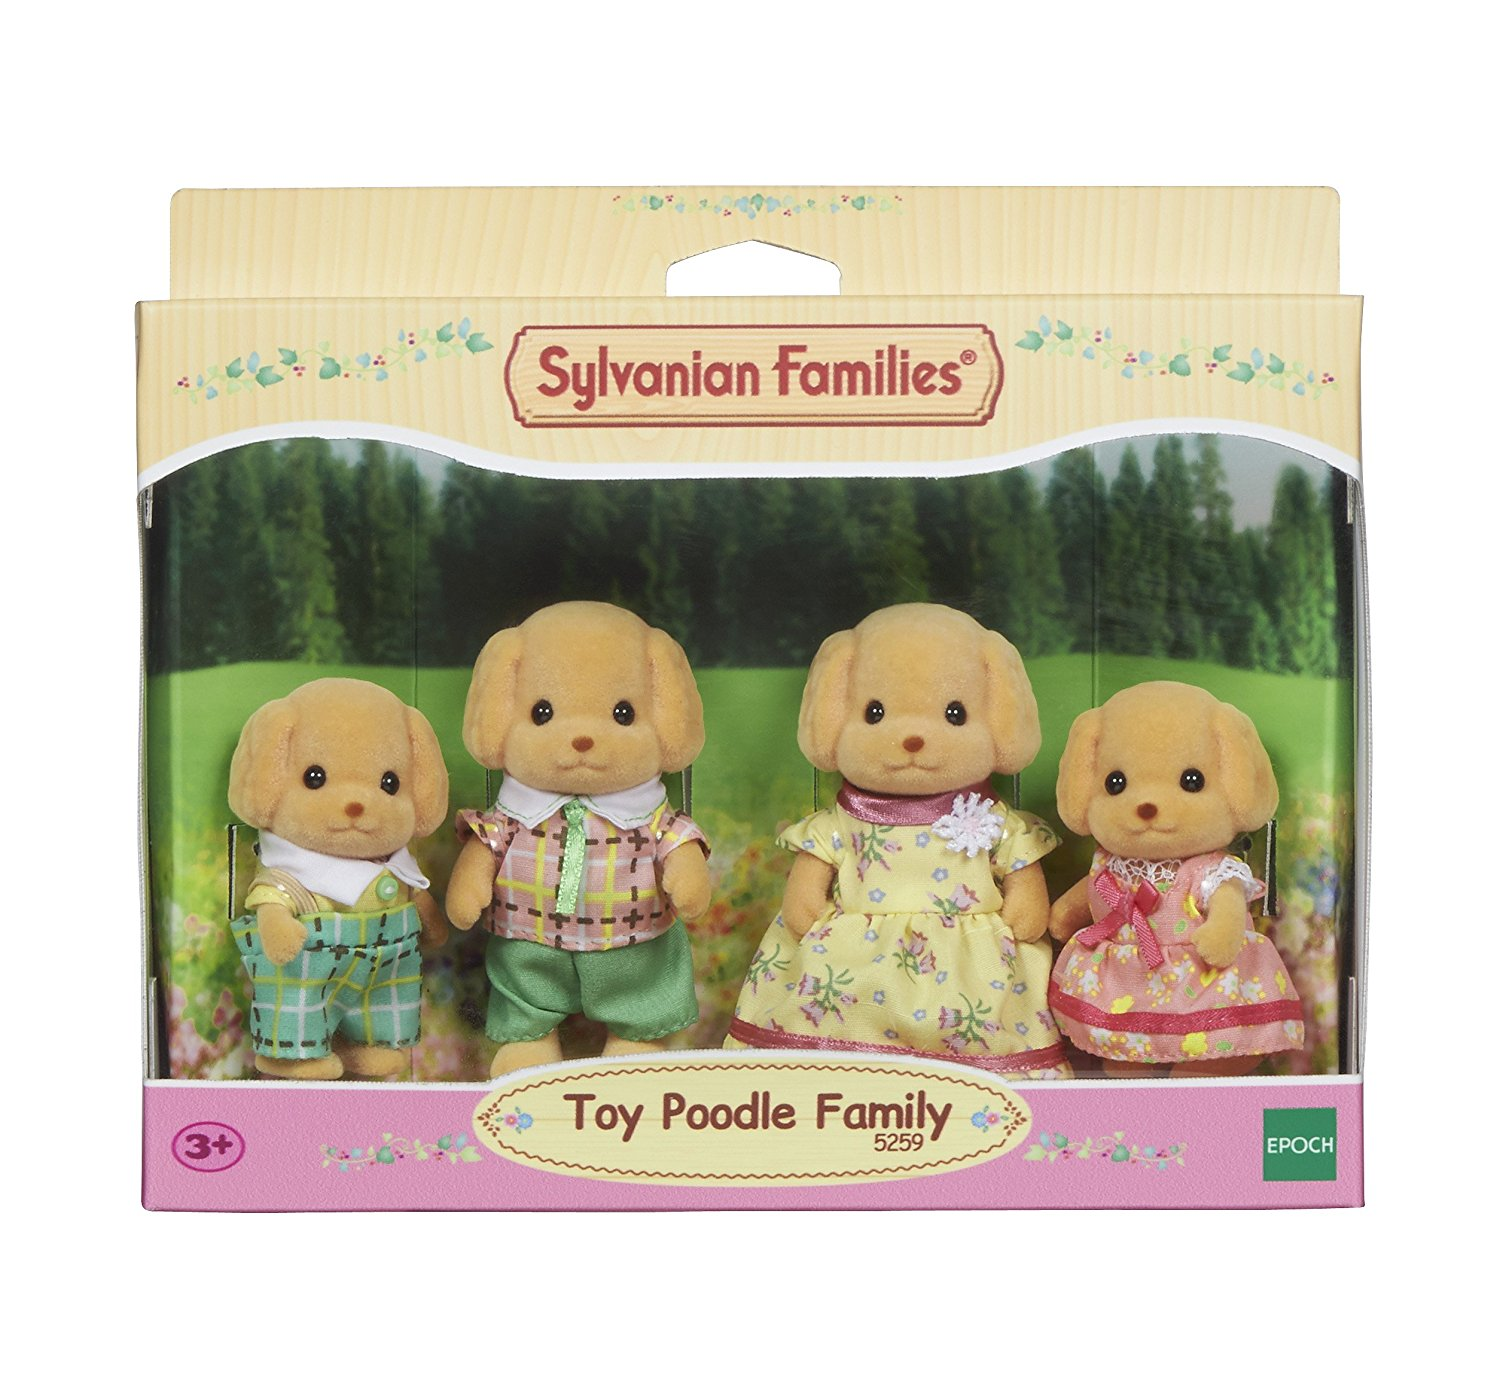 Familie Wuschl (Toy-Pudel)